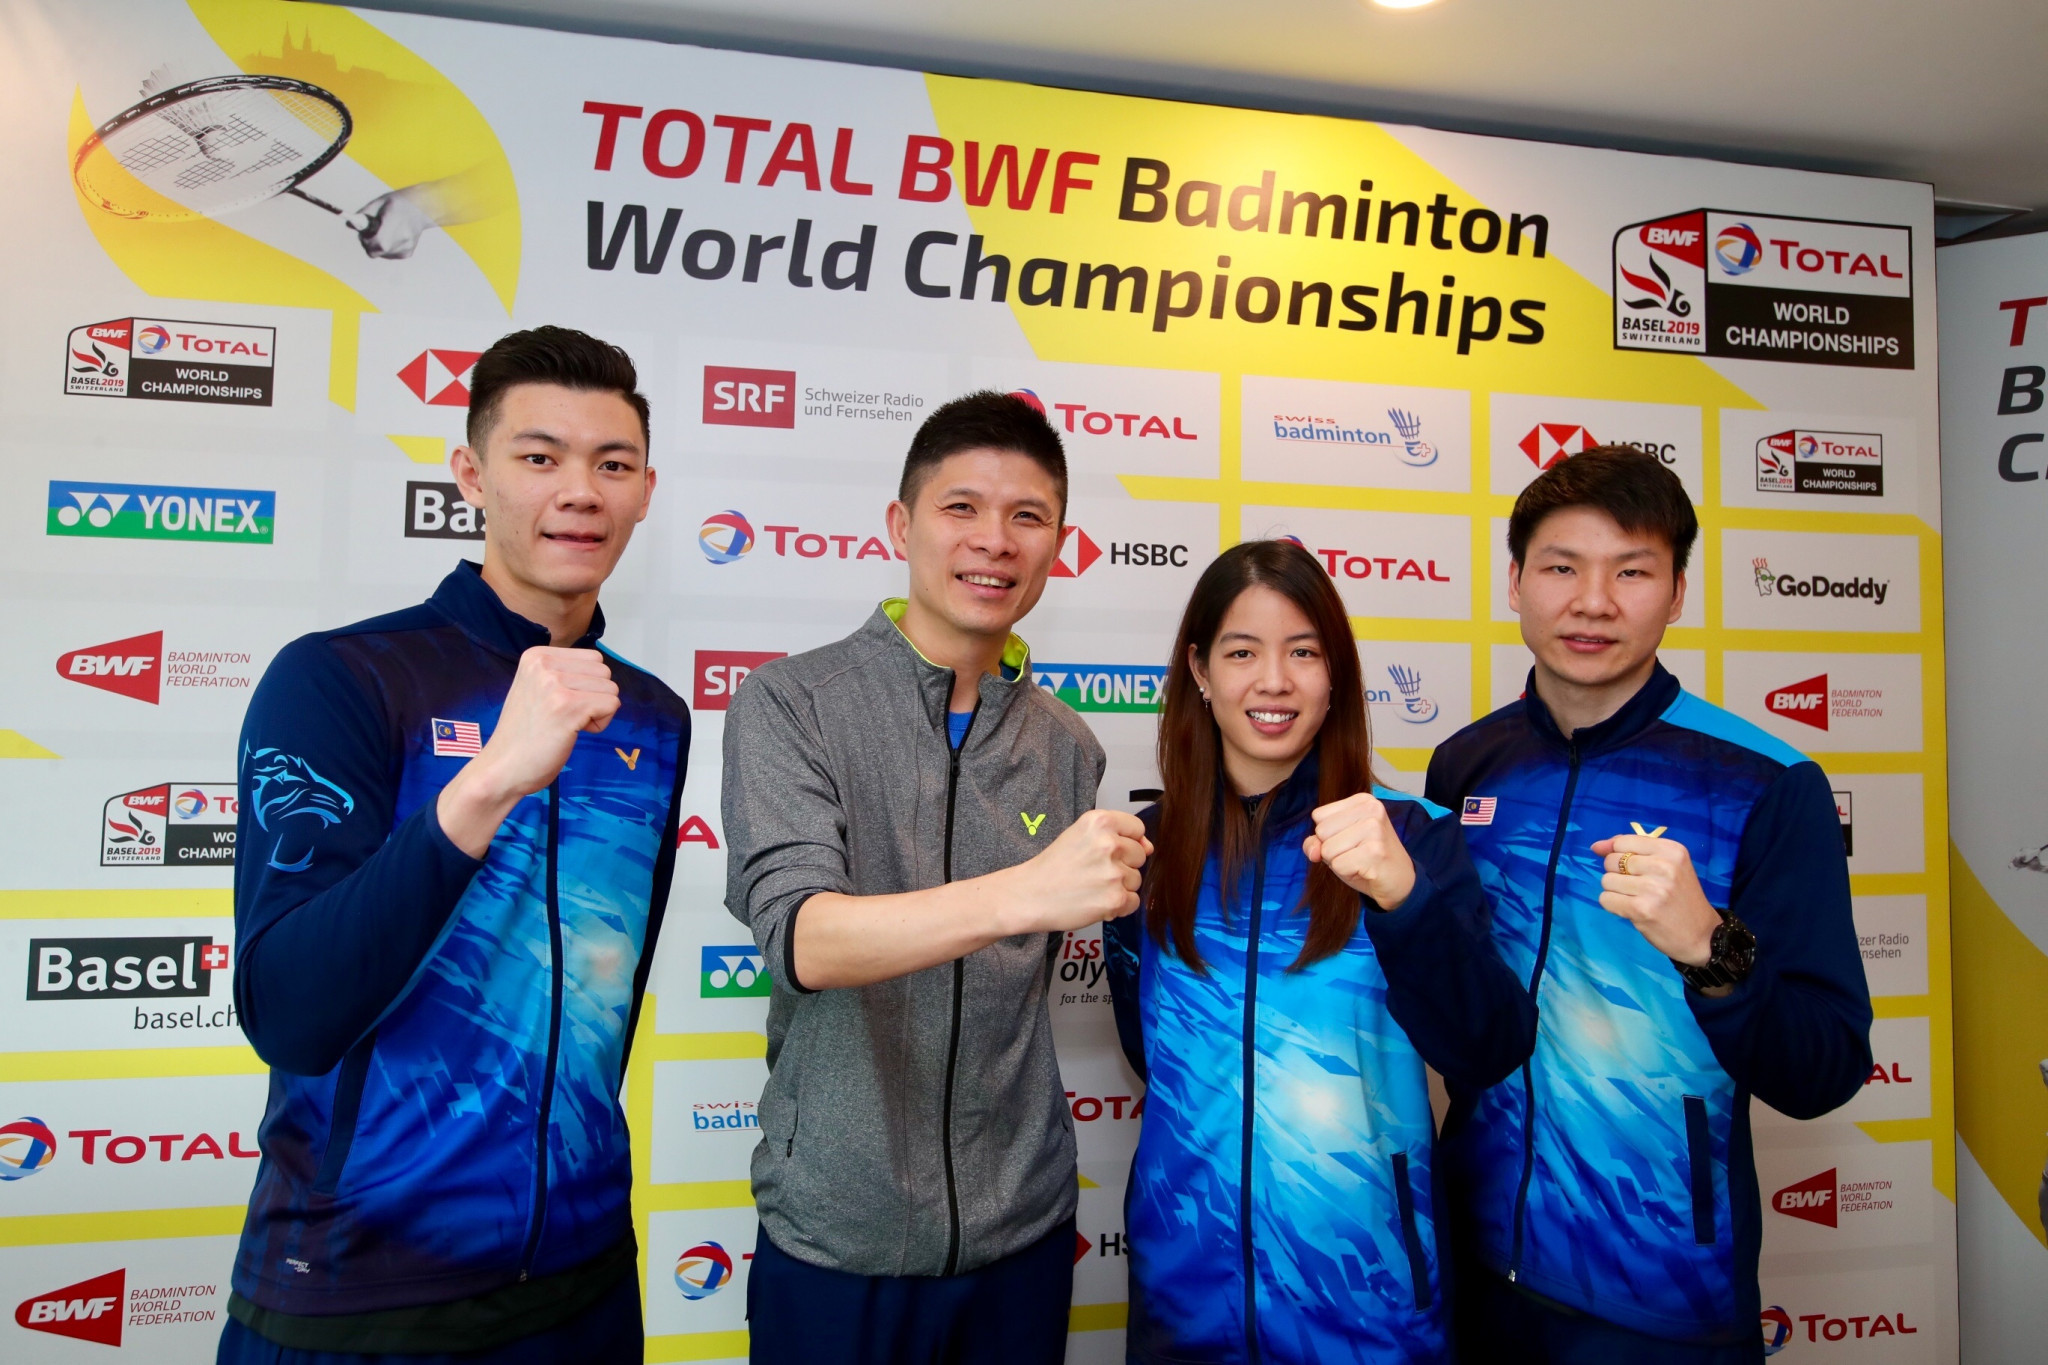 Malaysia team members Lee Zii Jia, Wong Choong Hann, Shevon Jemie Lai and Goh Soon Huat were among those in attendance at the draw ©BWF